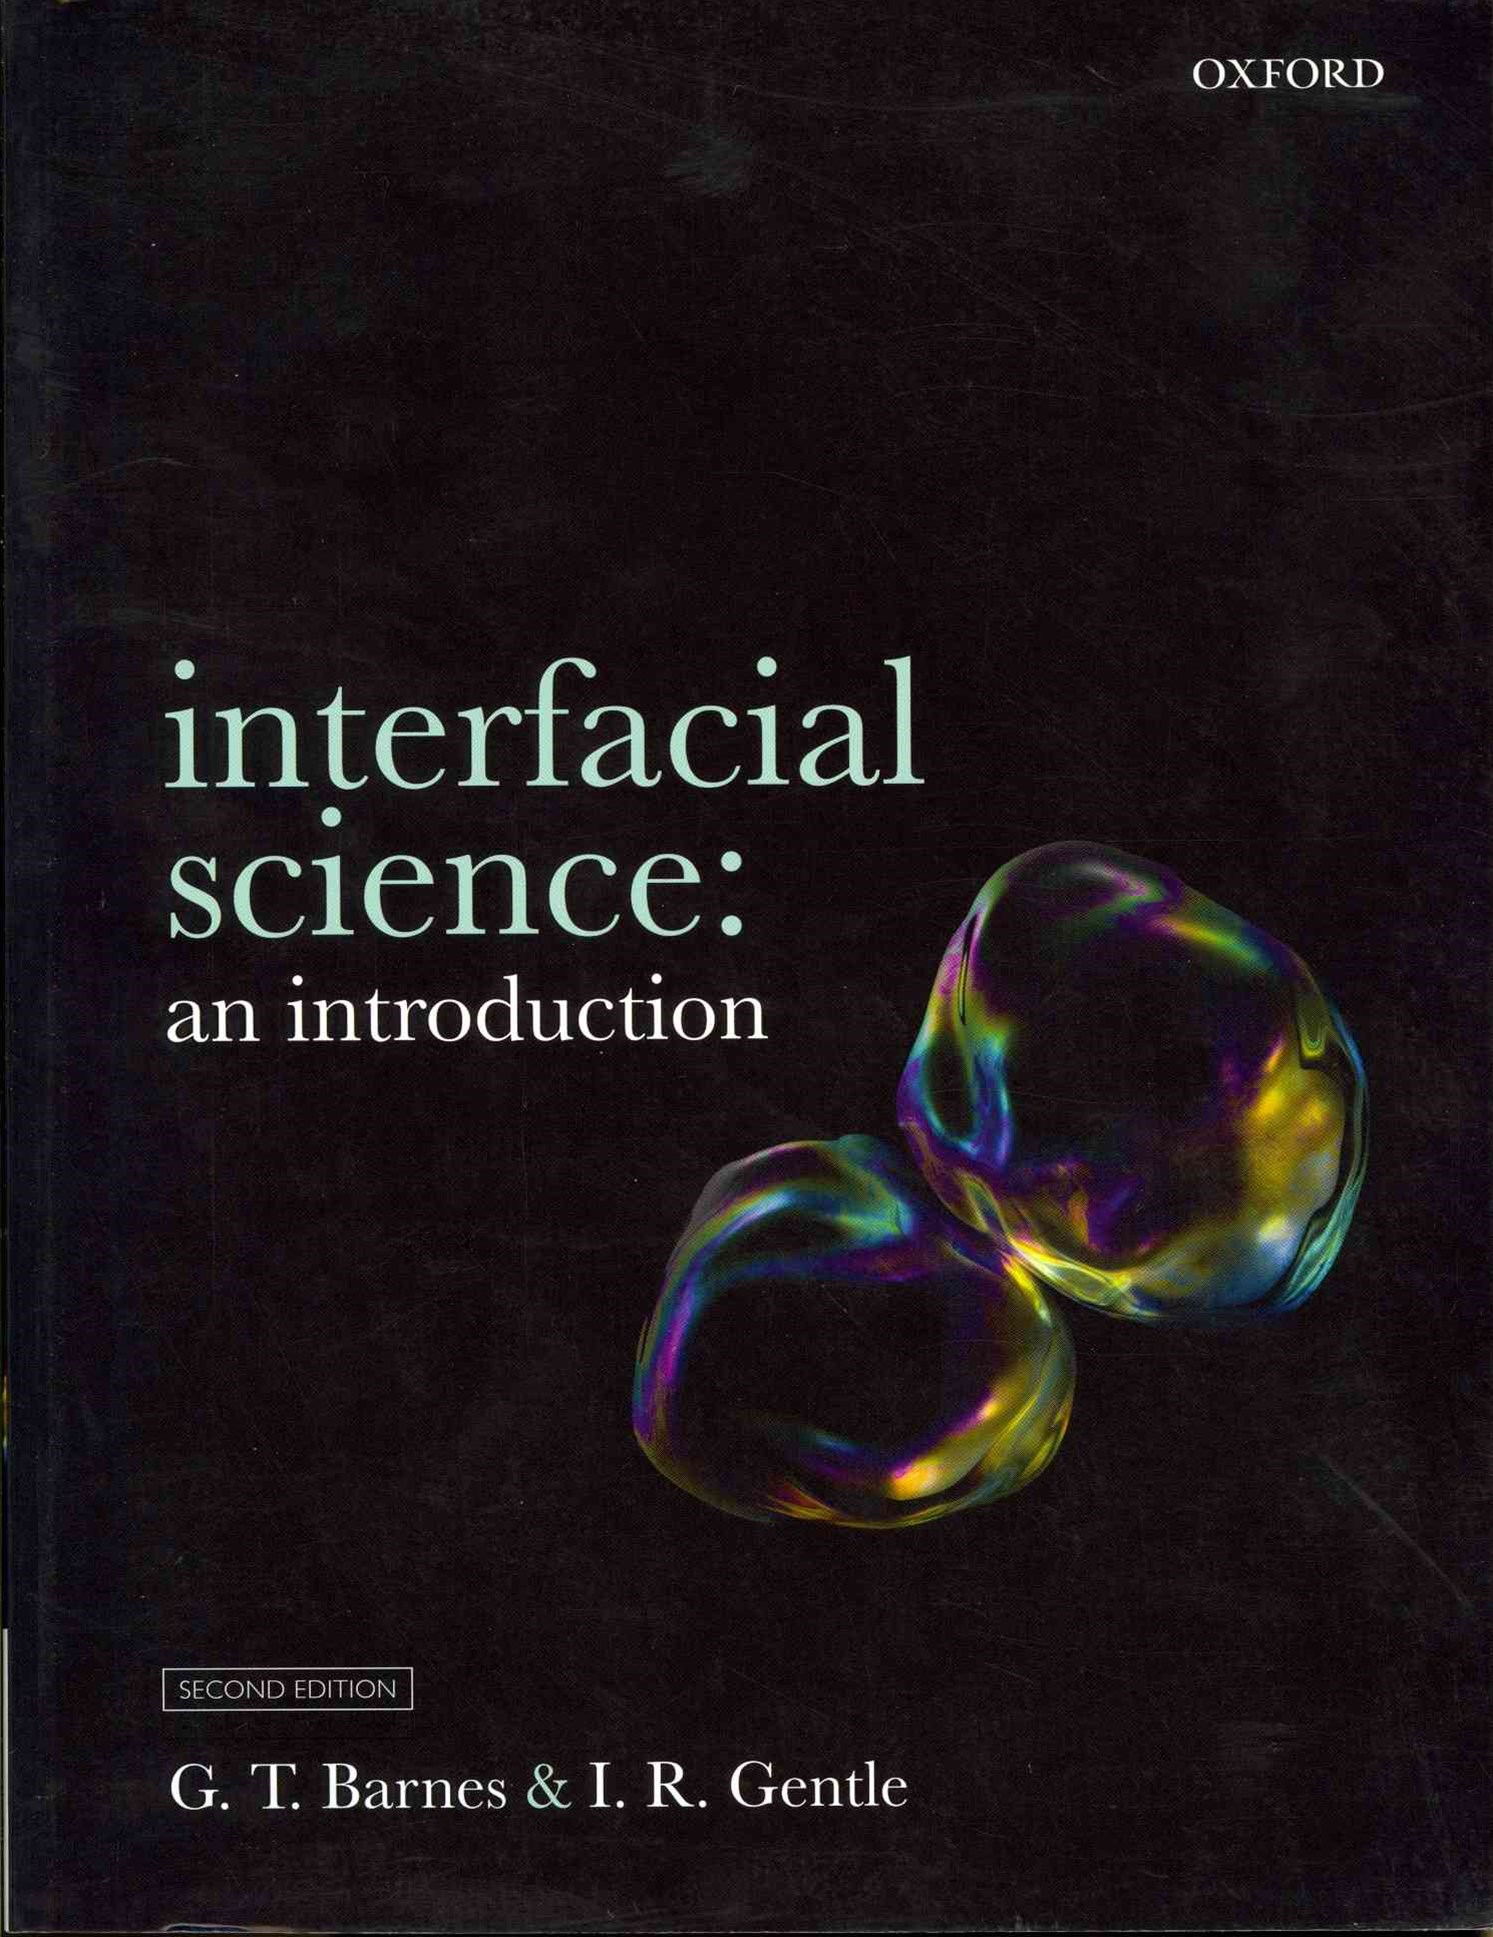 Introduction to Interfacial Science